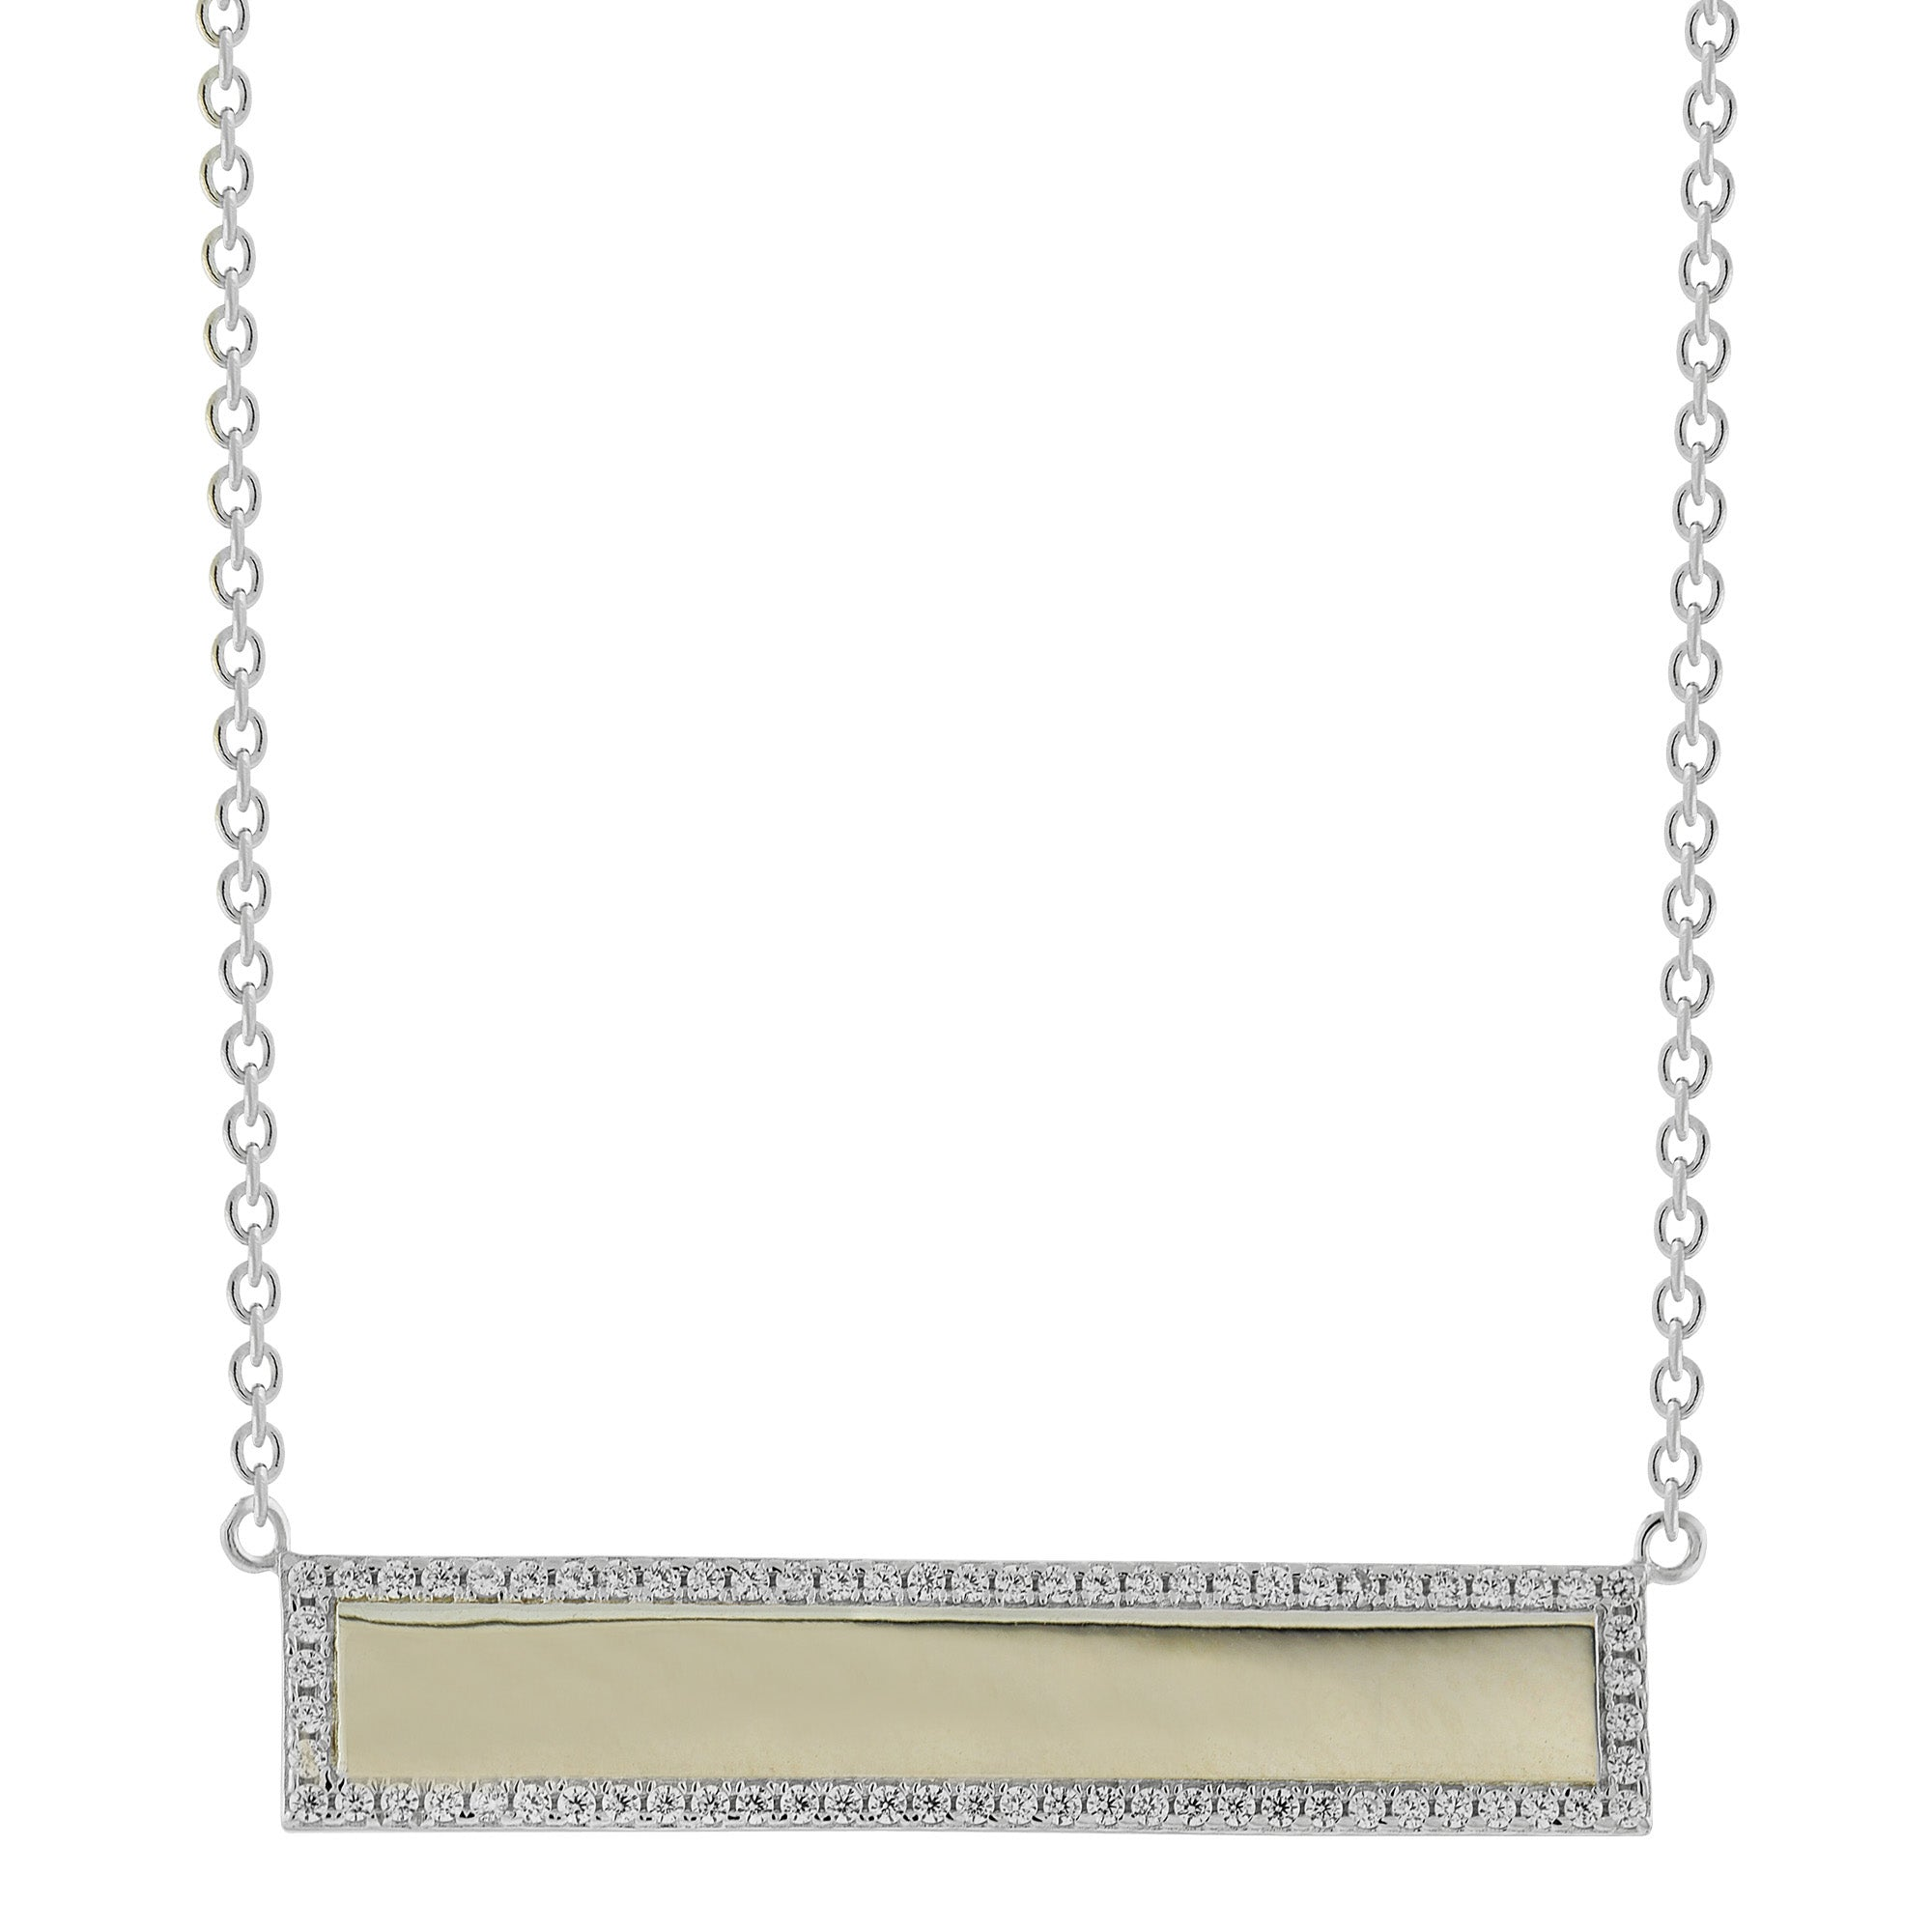 Border Name Plate Necklace